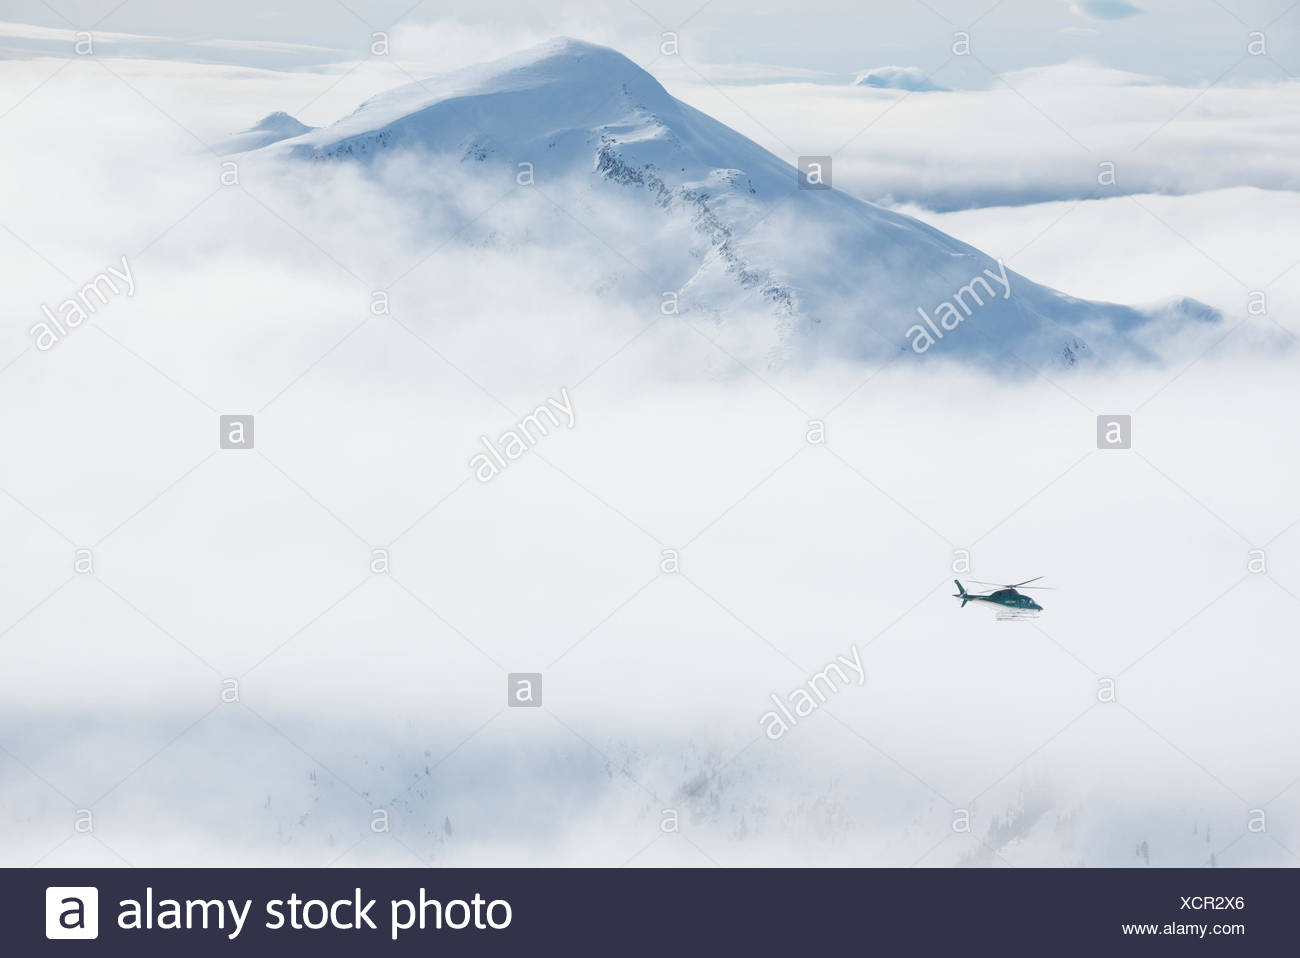 An A-Star helicopter flies past a remote mountain peak Northern Escapes heli-skiing near Terrace, British Columbia - Stock Image